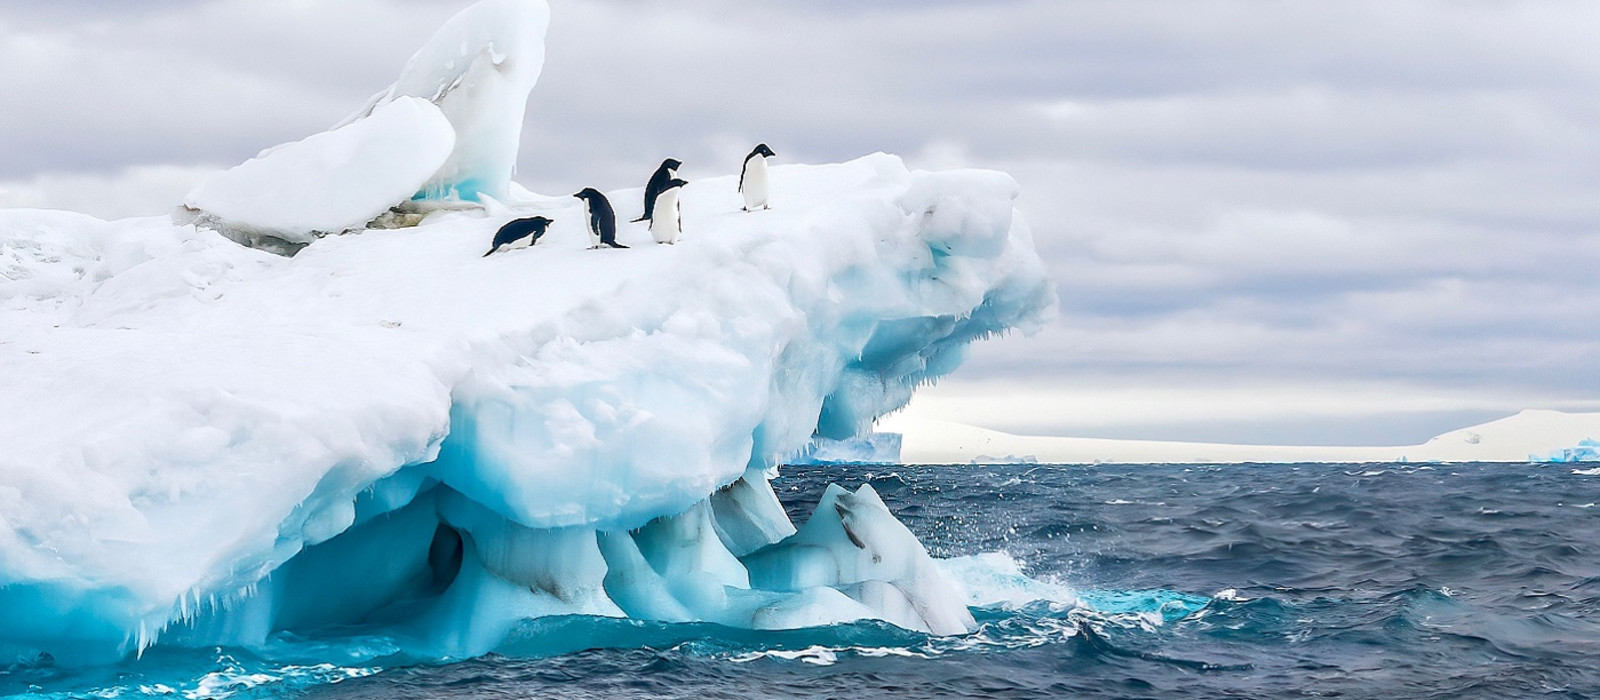 An Antarctica nature scene, with a group of five Adelie penguins on a floating iceberg in the icy cold waters of the Weddell Sea, near the Tabarin Peninsula, Antarctica